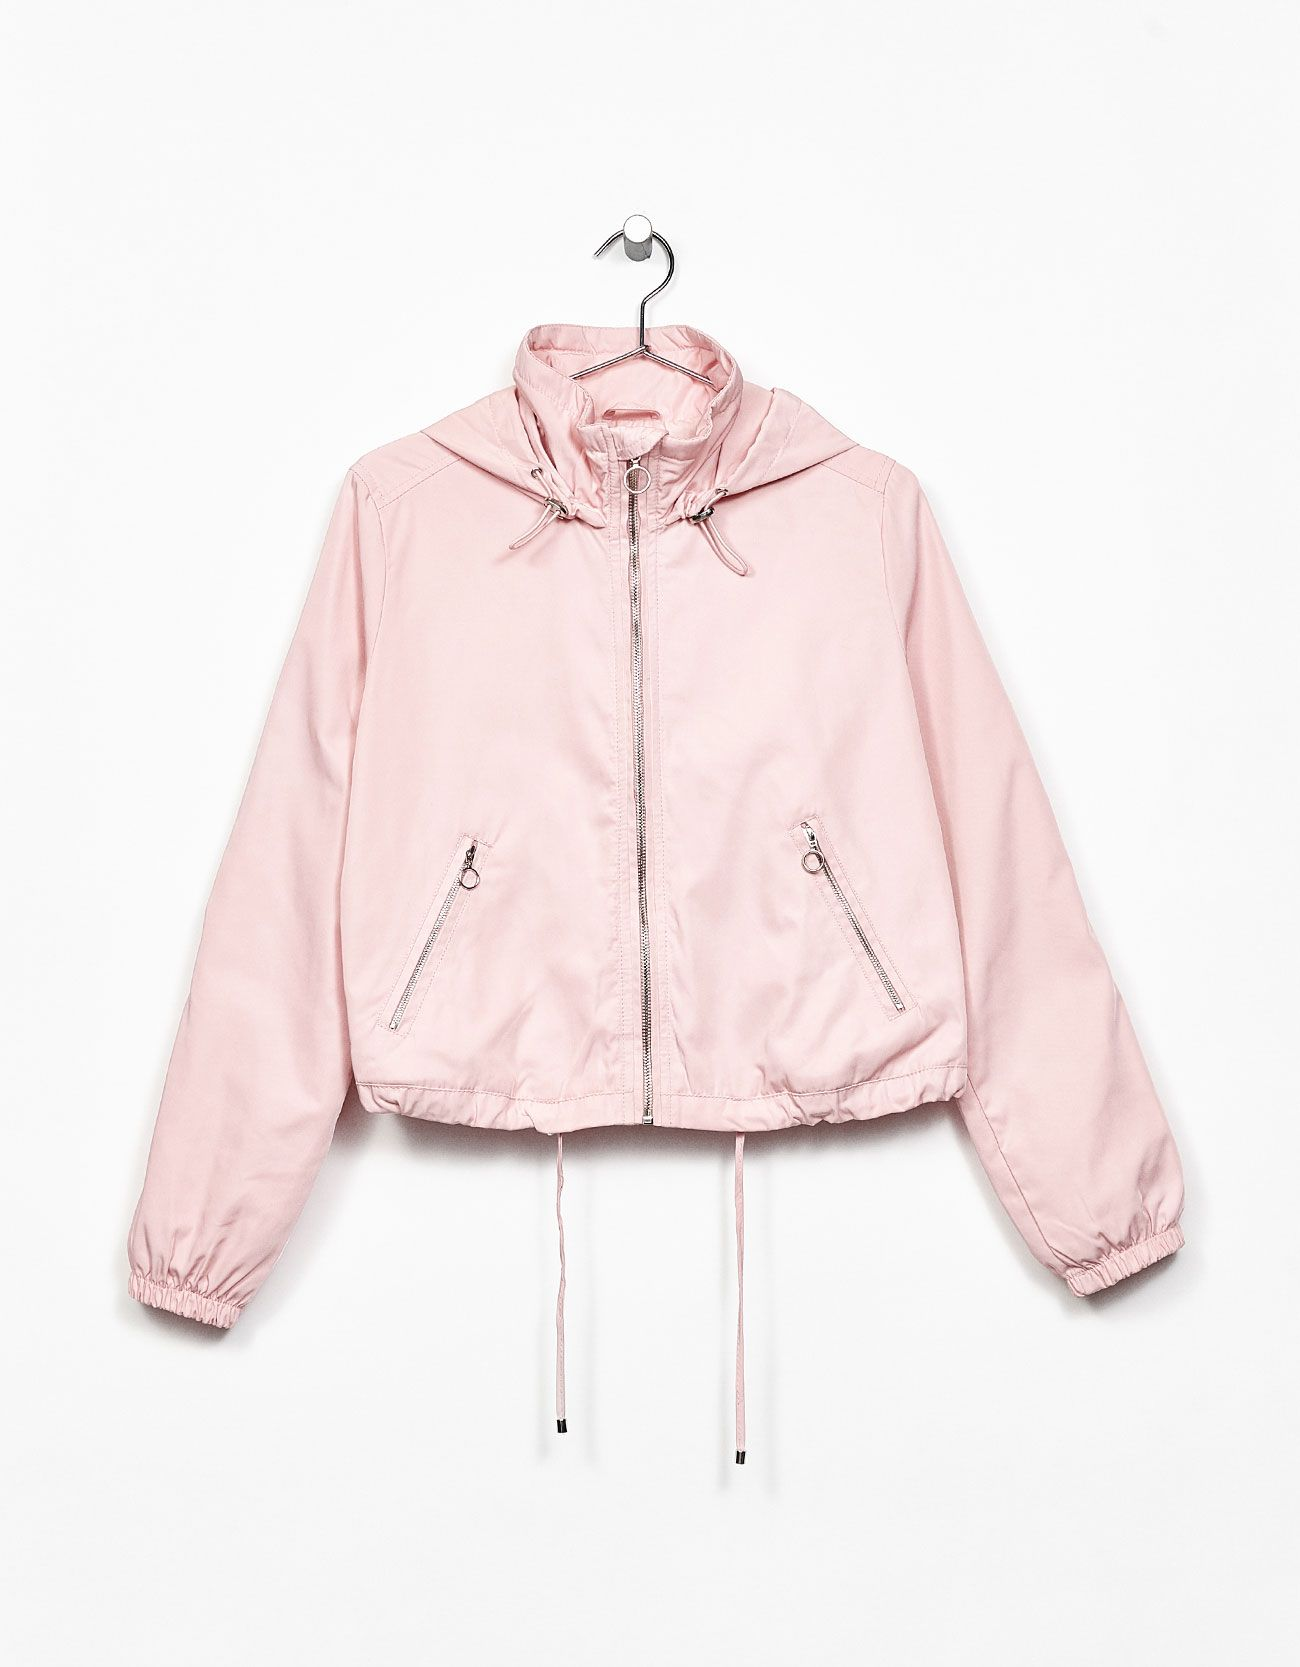 6ec599c2cae Nylon jacket with hood. Discover this and many more items in Bershka with  new products every week